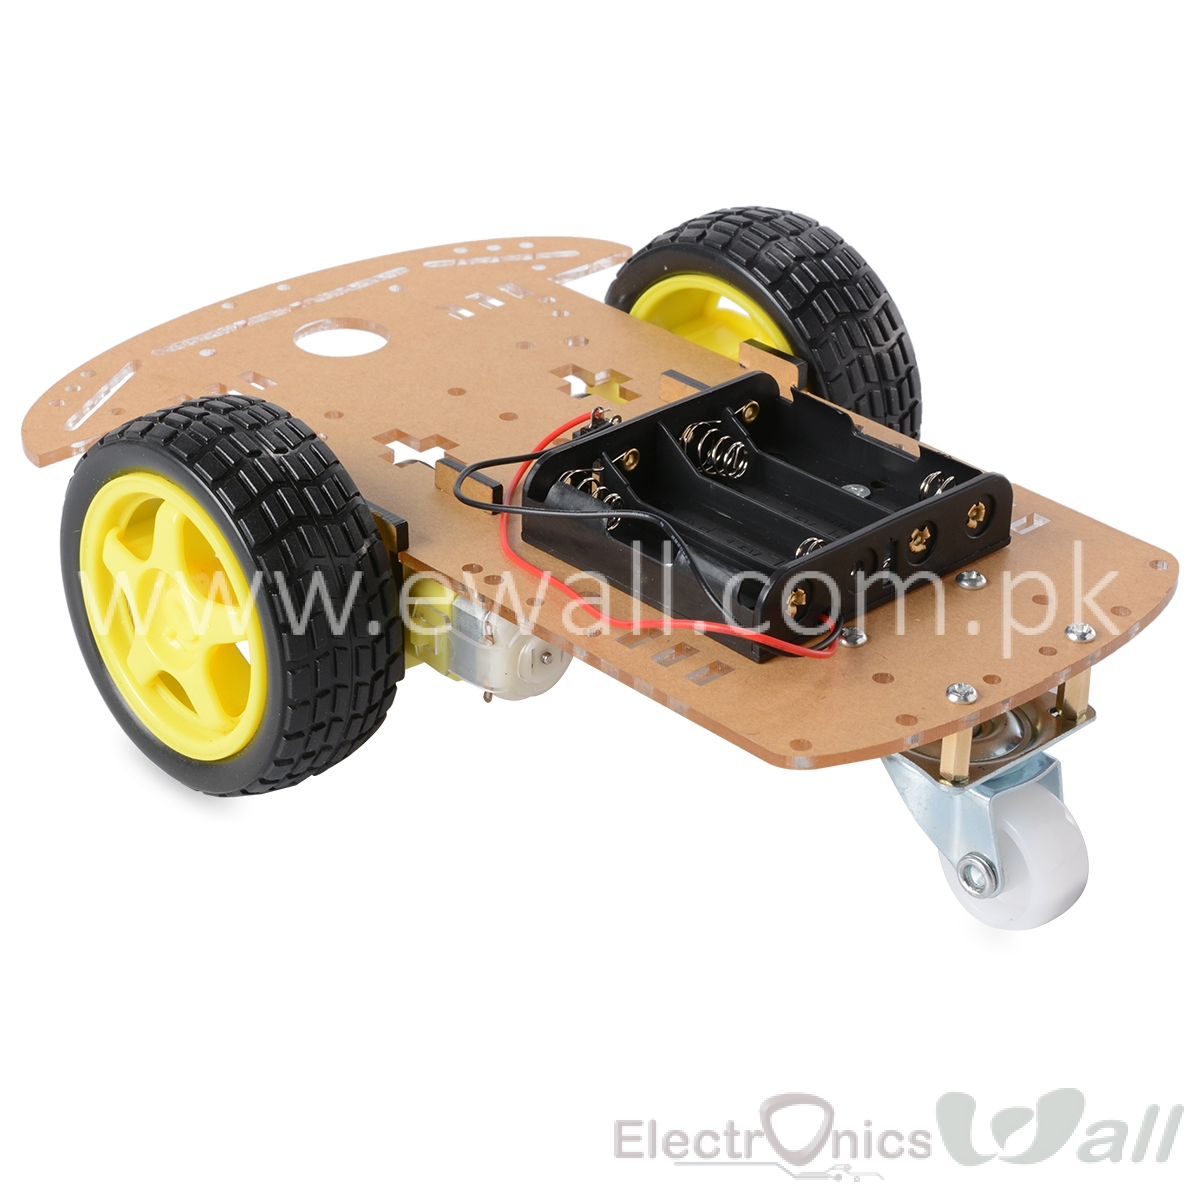 2WD 3 Wheel Robotic Smart Car Chassis (Economy )